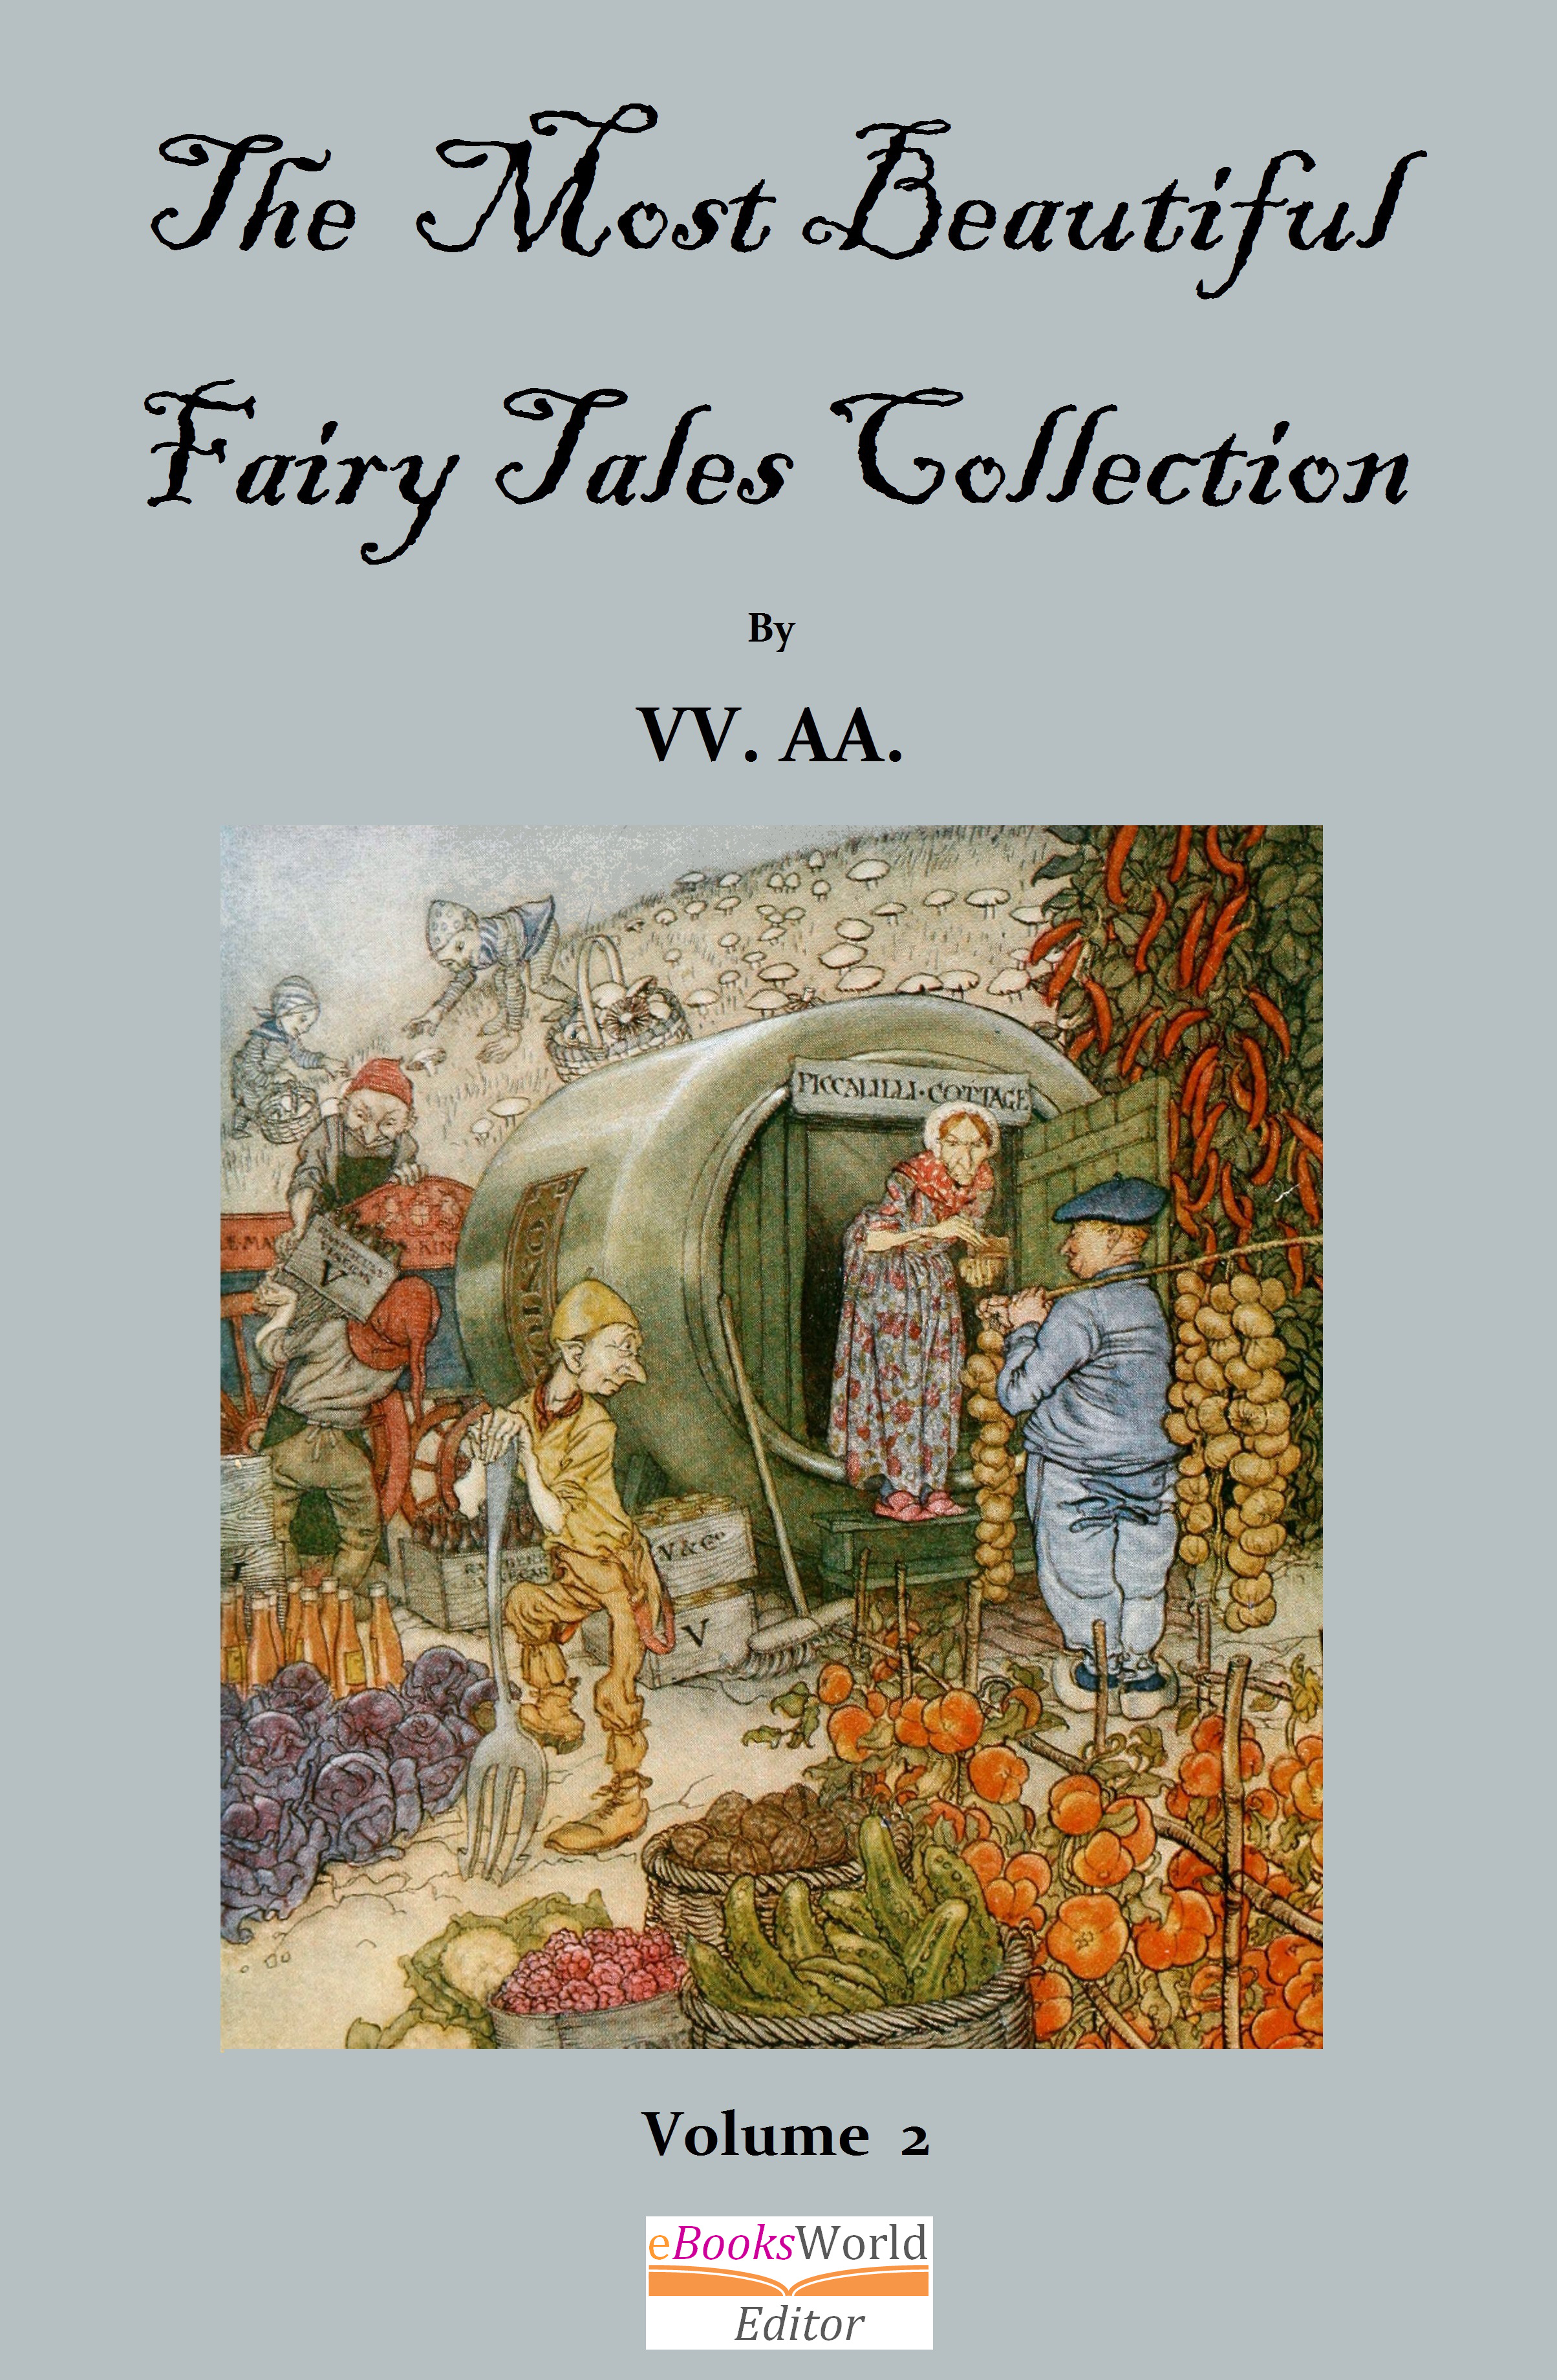 The Most Beautiful Fairy Tales Collection - Vol 2, an Ebook by Autori Vari